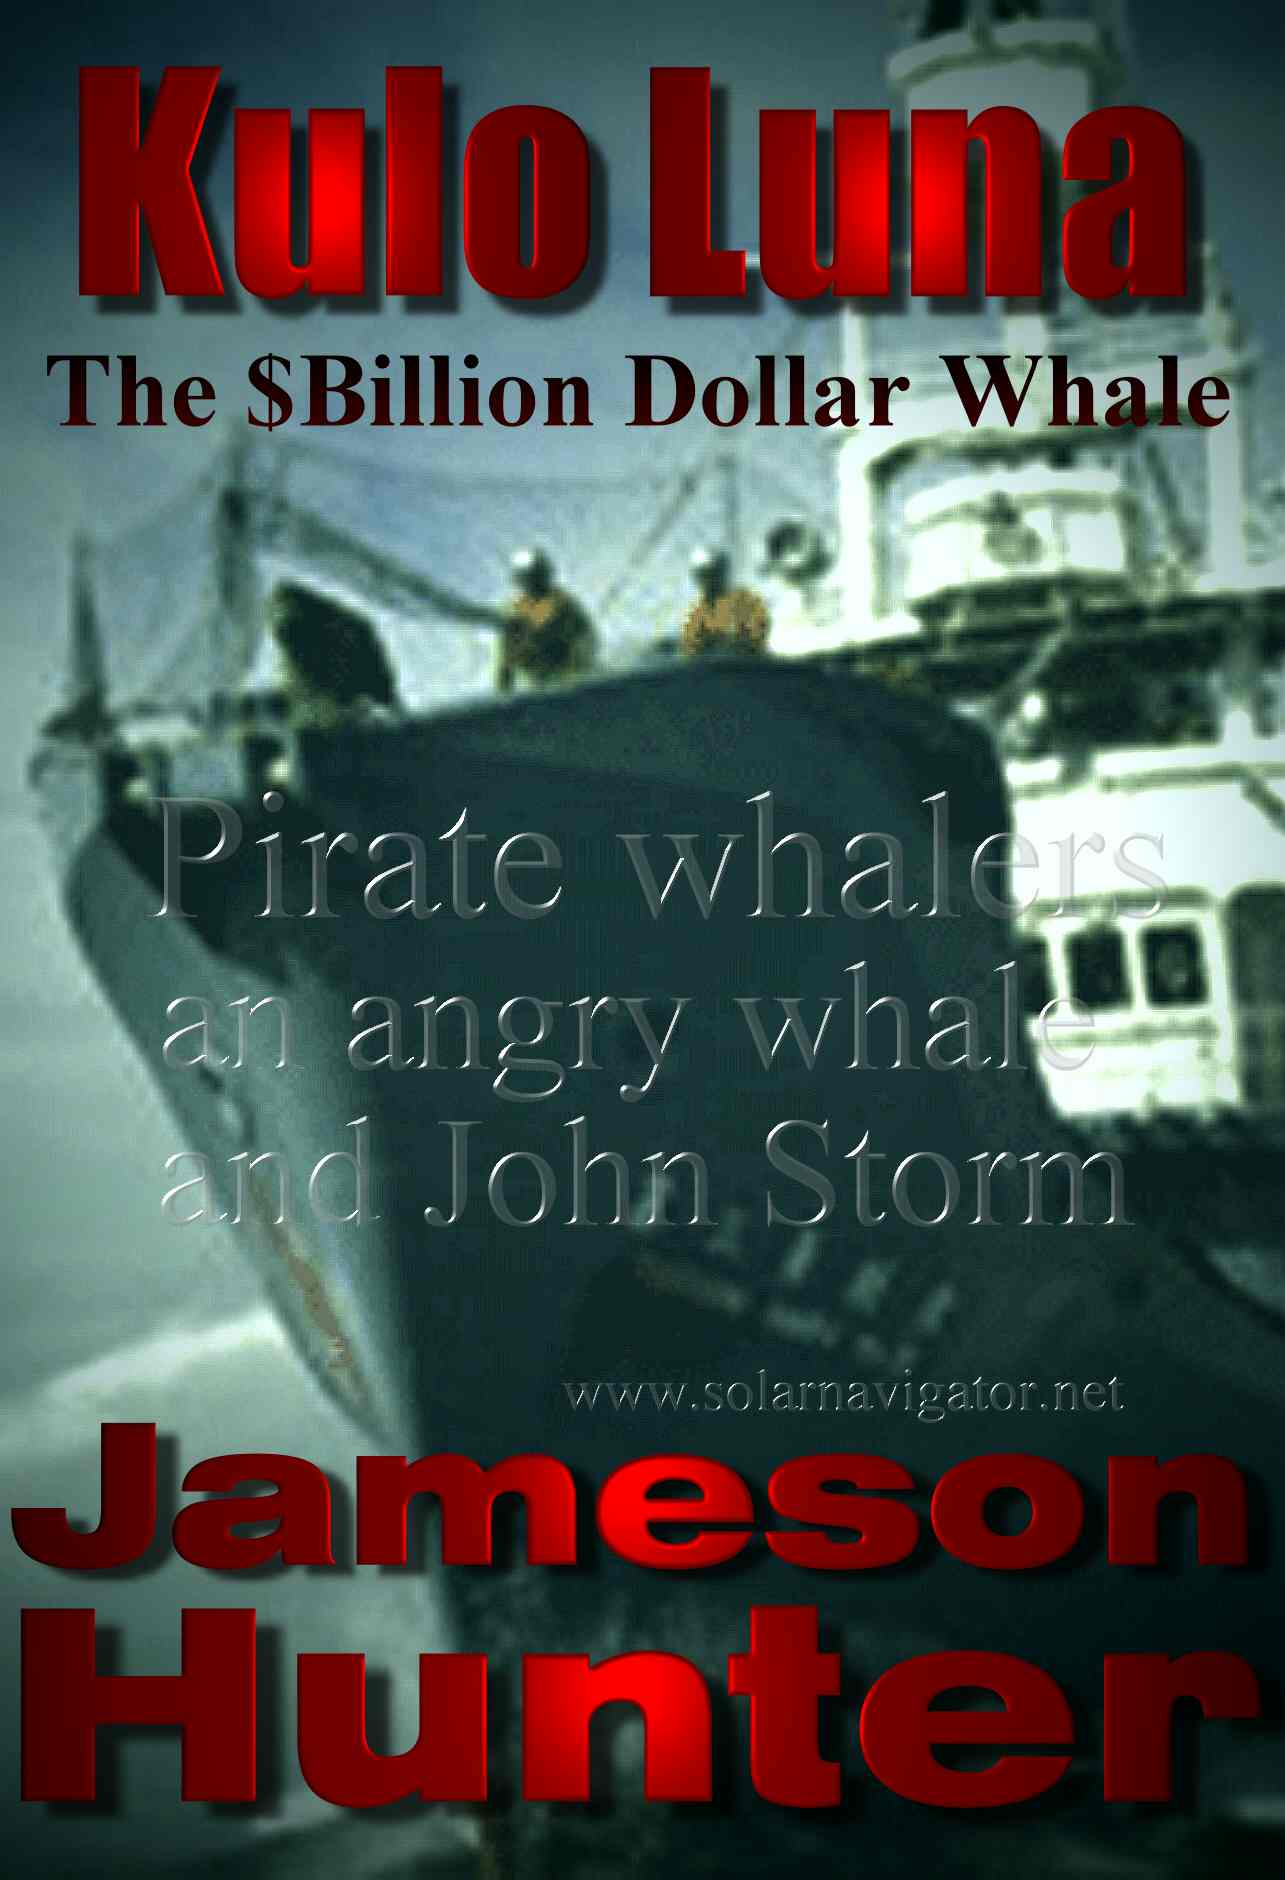 The $Billion Dollar whale, adventure story with John Storm